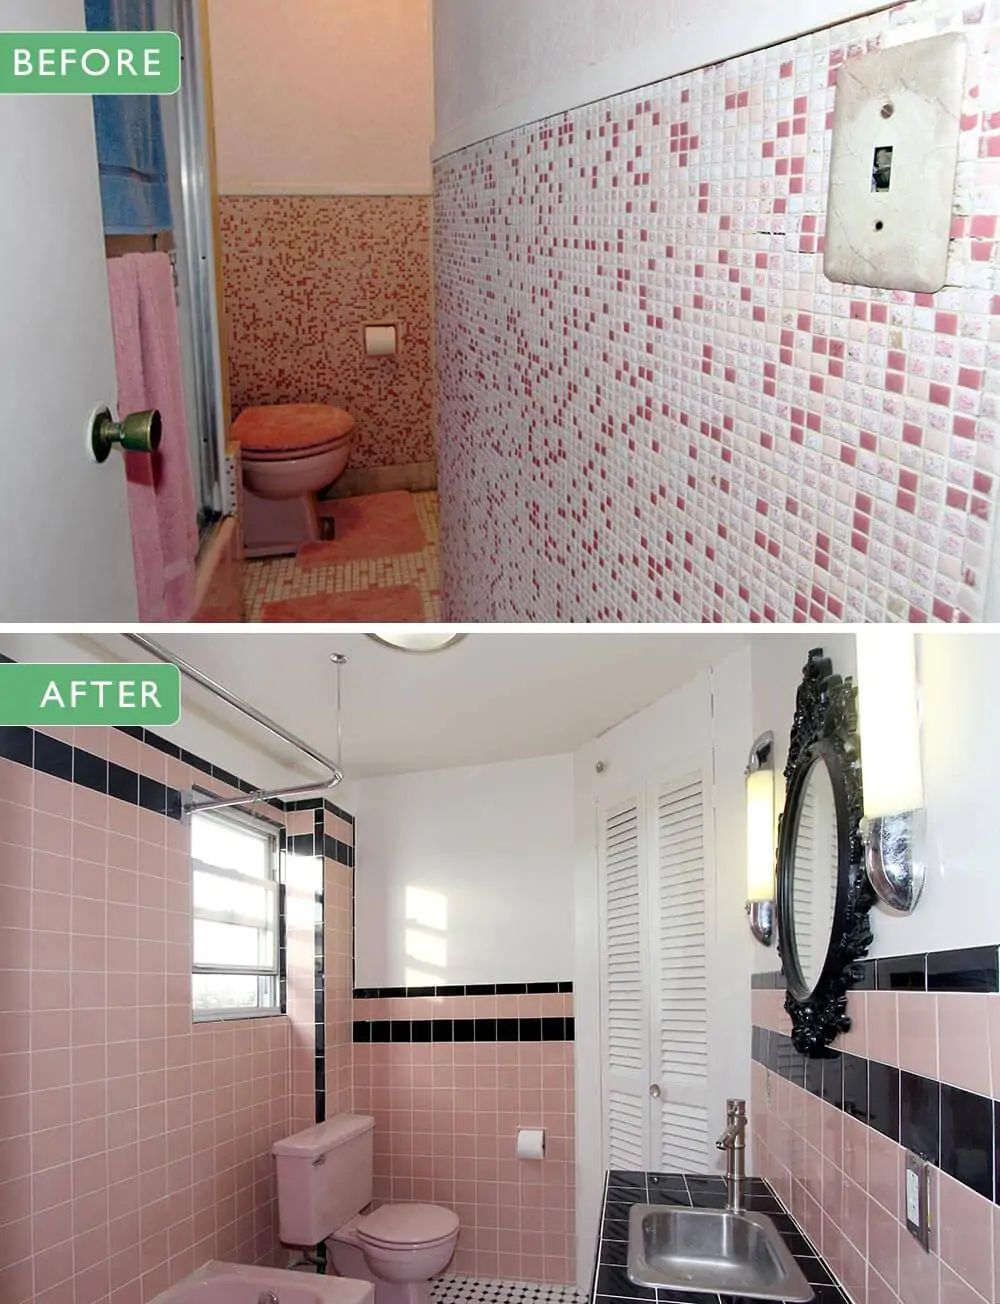 Where to find vintage bathroom tile remember to check